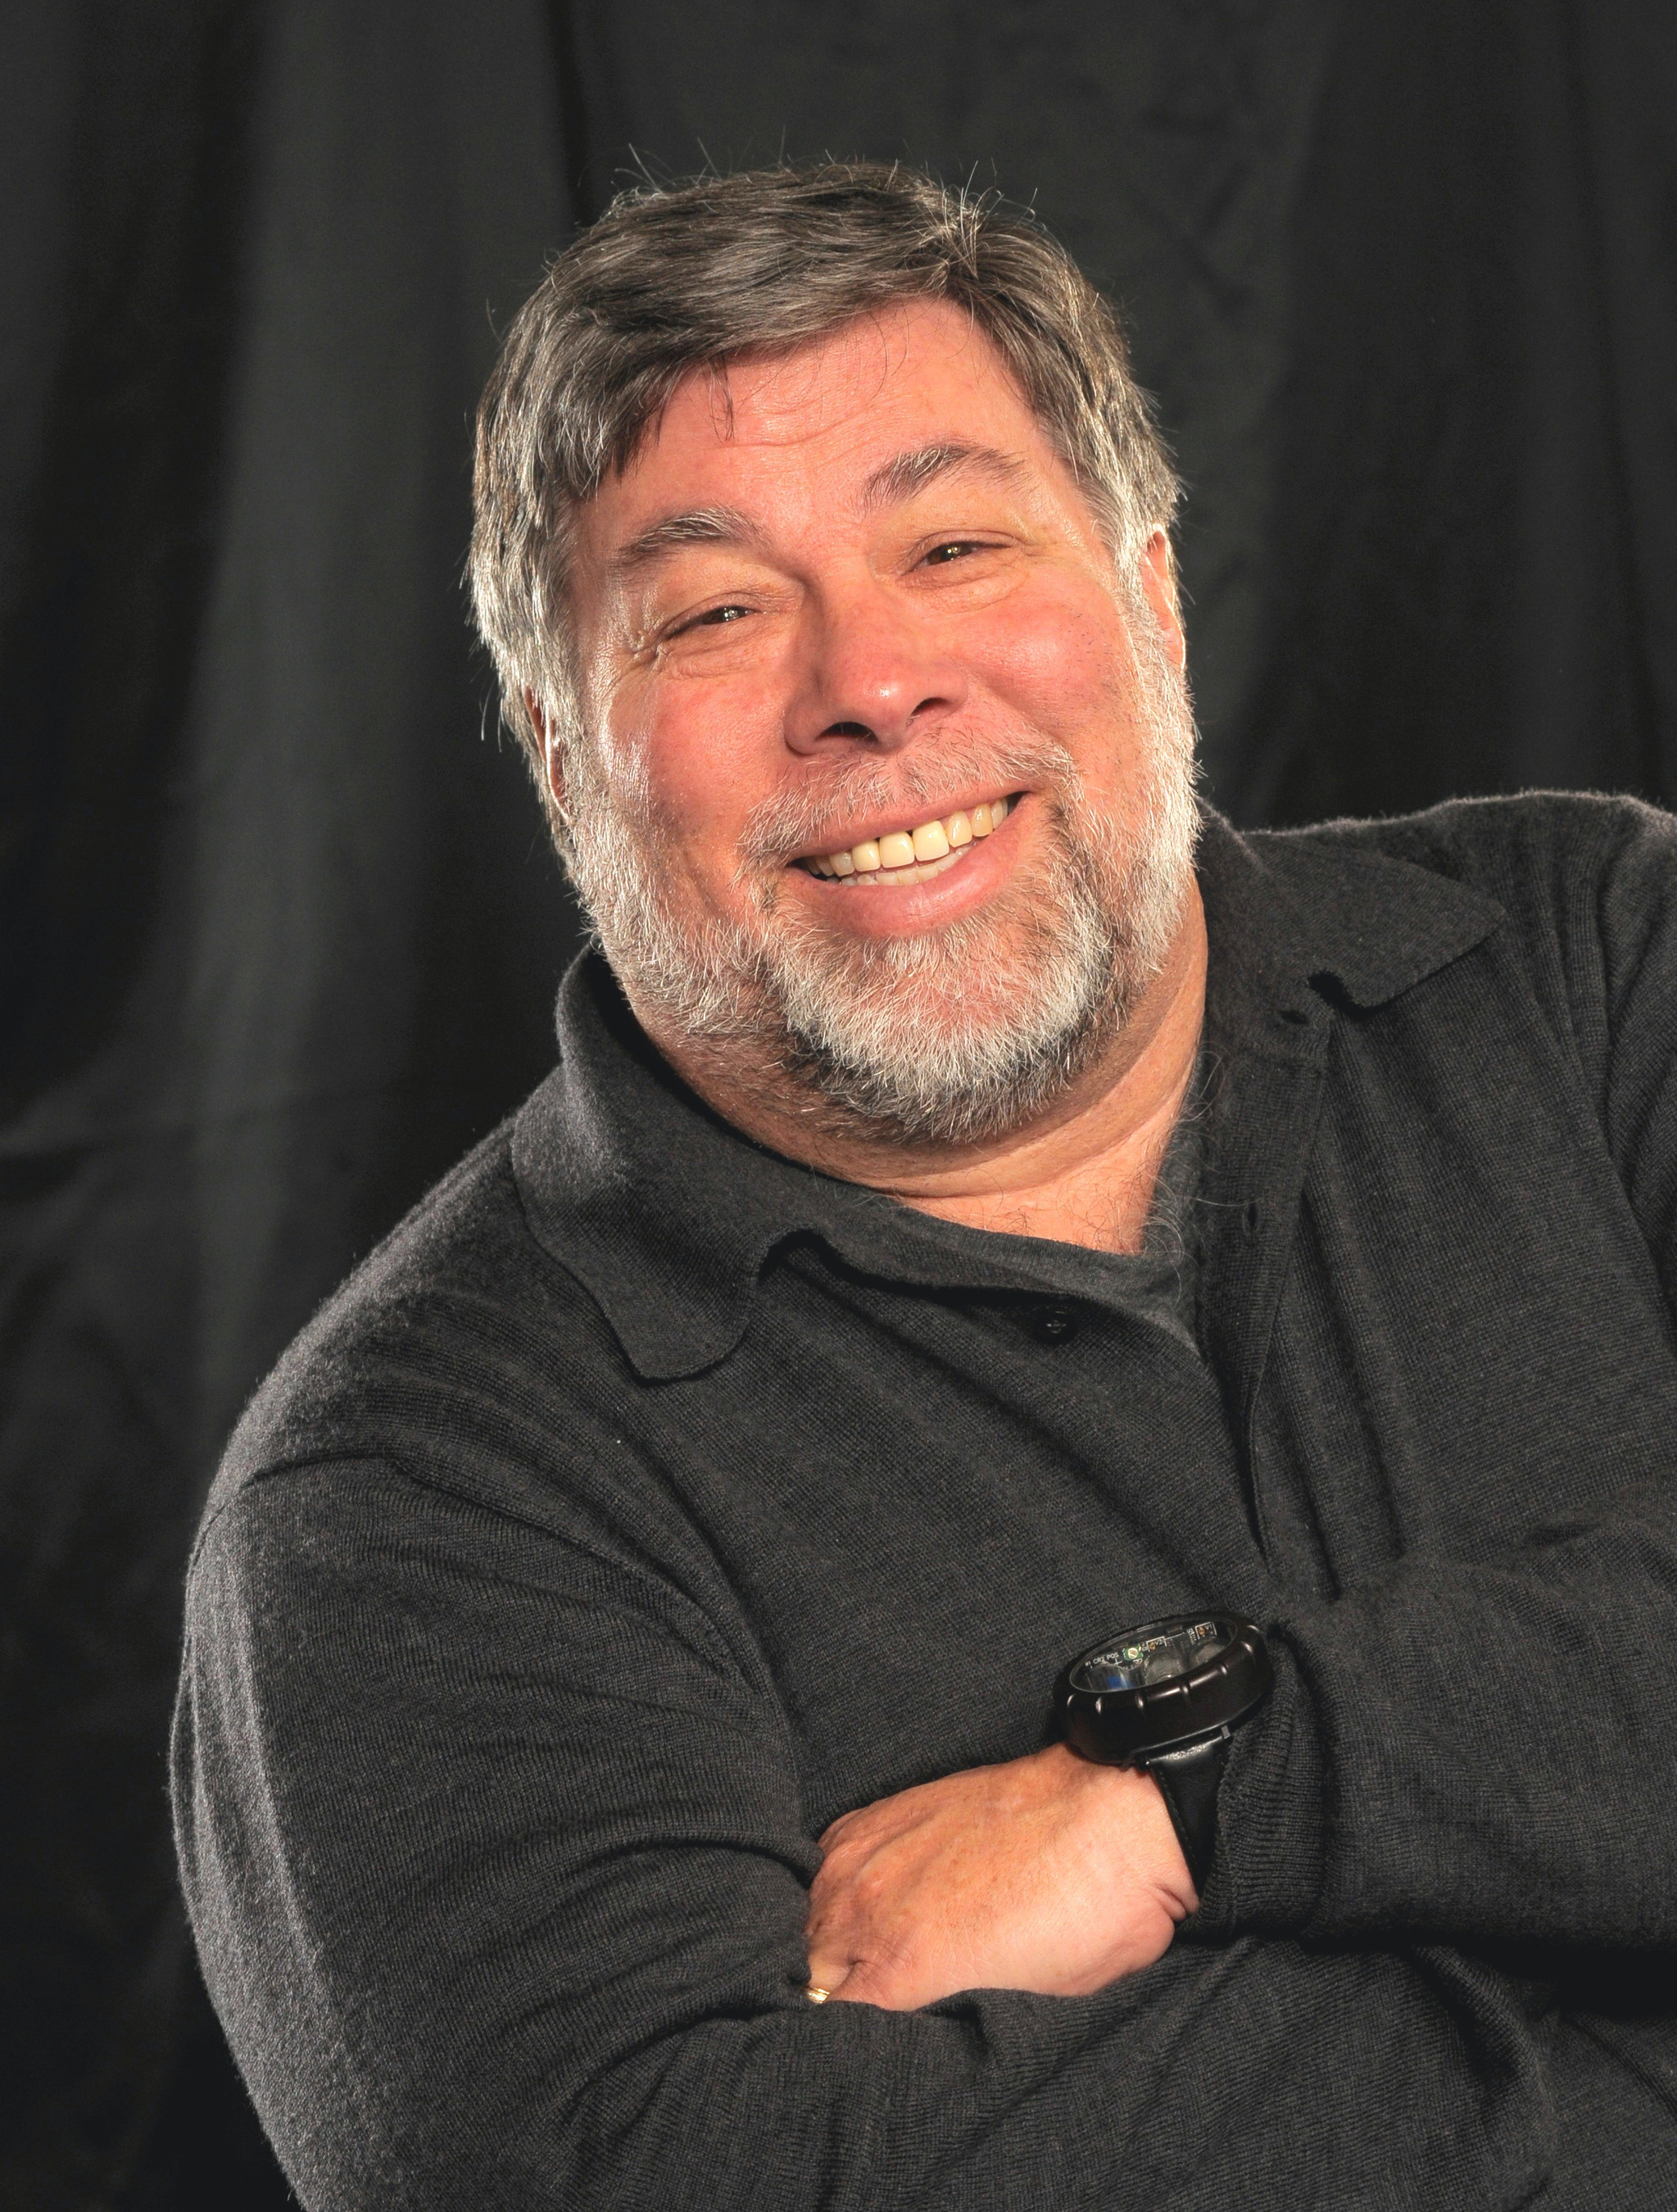 Apple Co-founder Steve Wozniak to Keynote Postgres Vision 2016